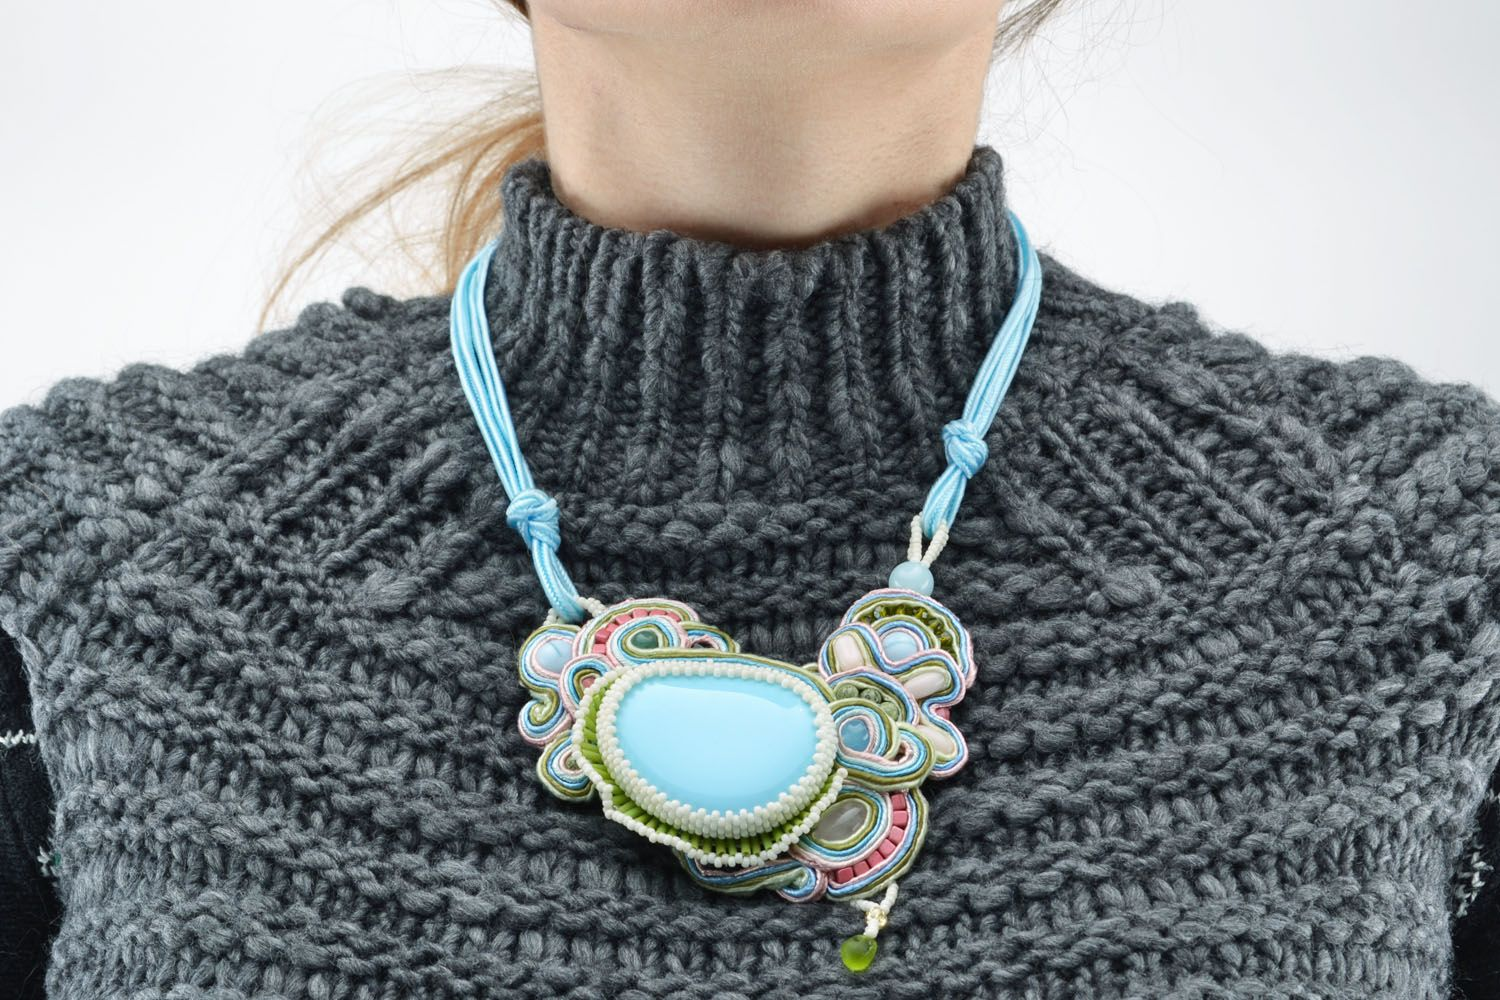 Necklace with natural stones photo 5